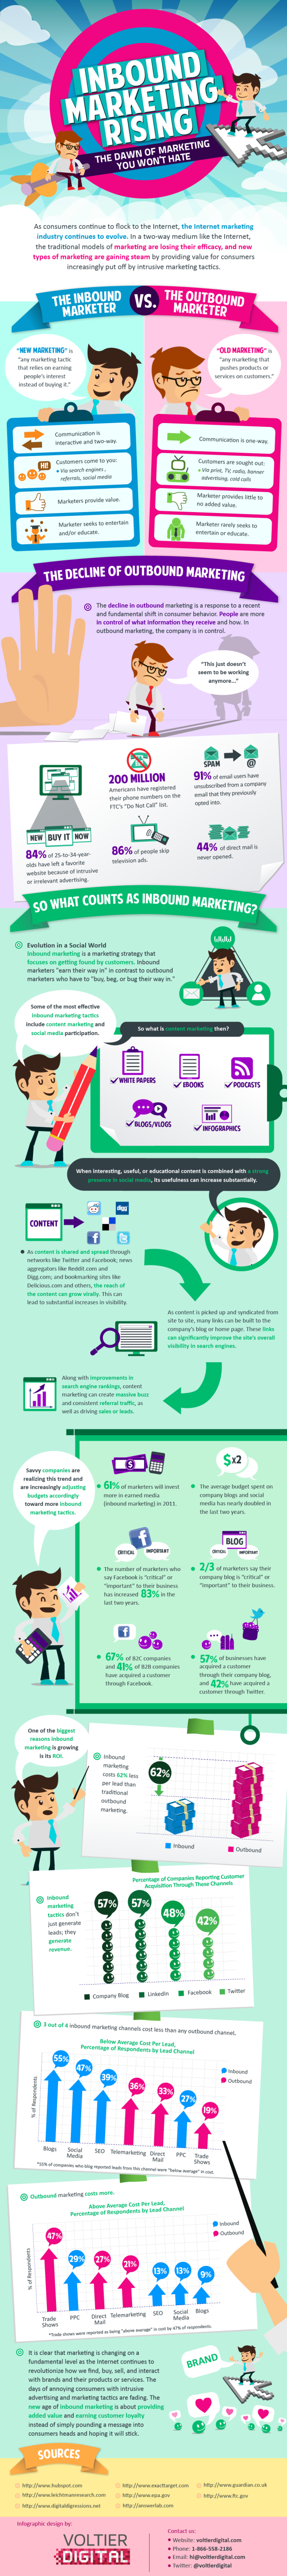 inbound vs outbound infographic resized 600